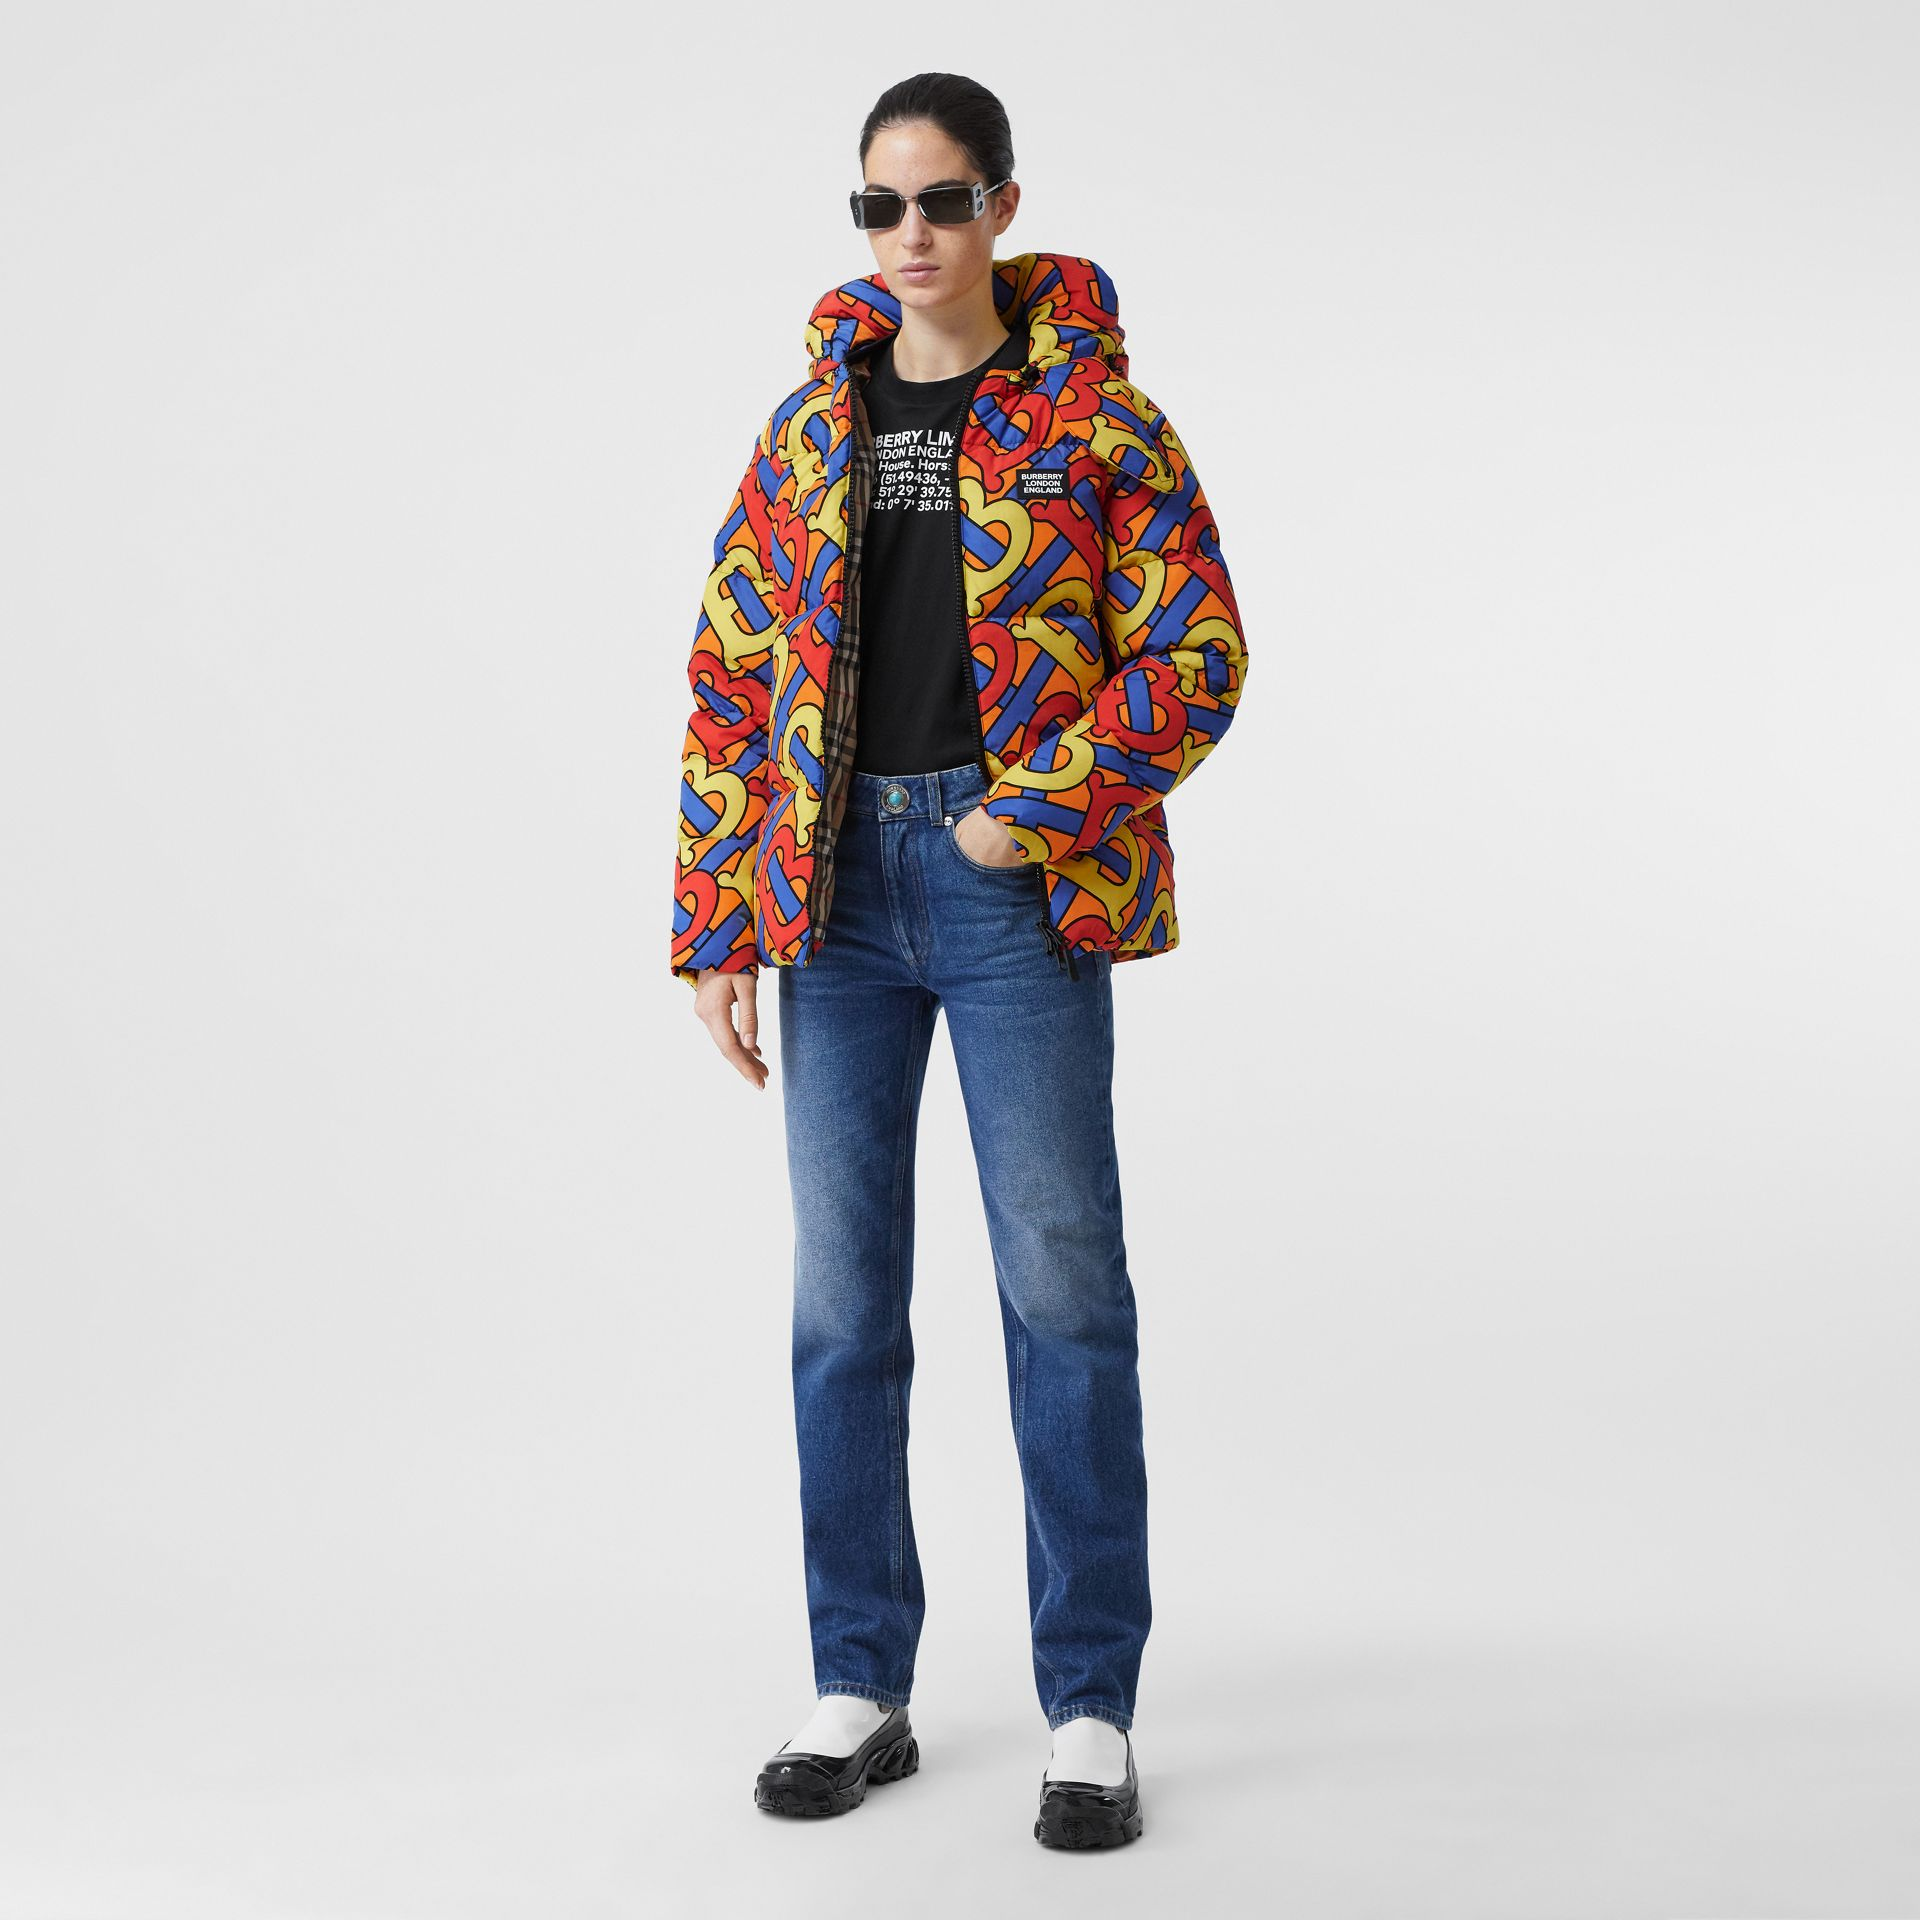 Monogram Print Puffer Jacket in Multicolour | Burberry - gallery image 2